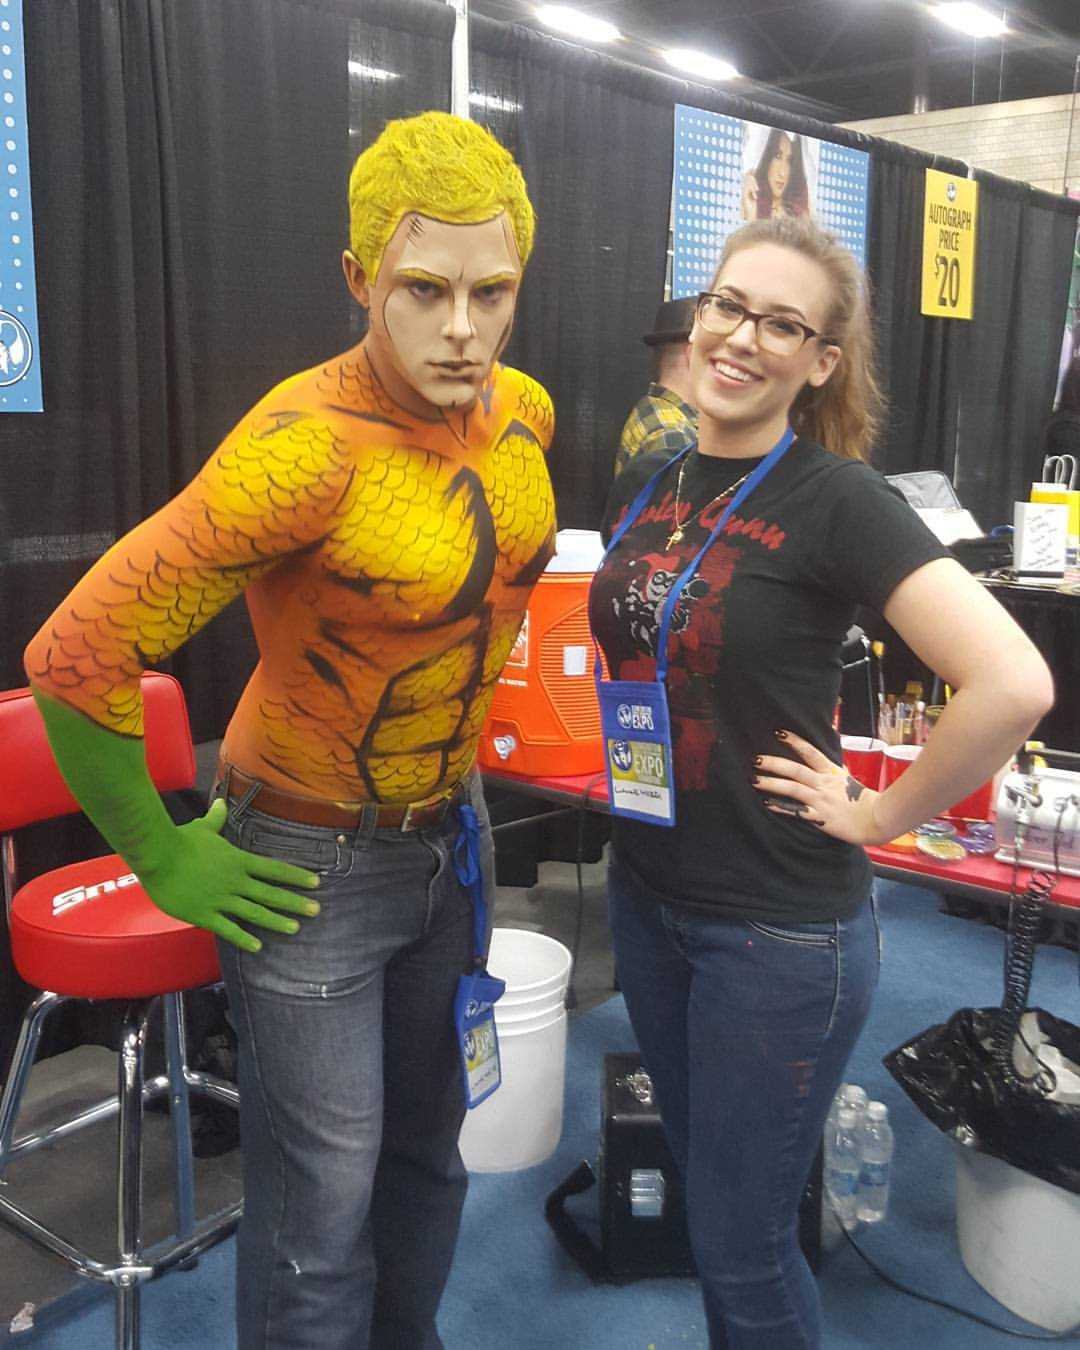 Make-Up Artist Turns People Into Comic Characters | make-up artist